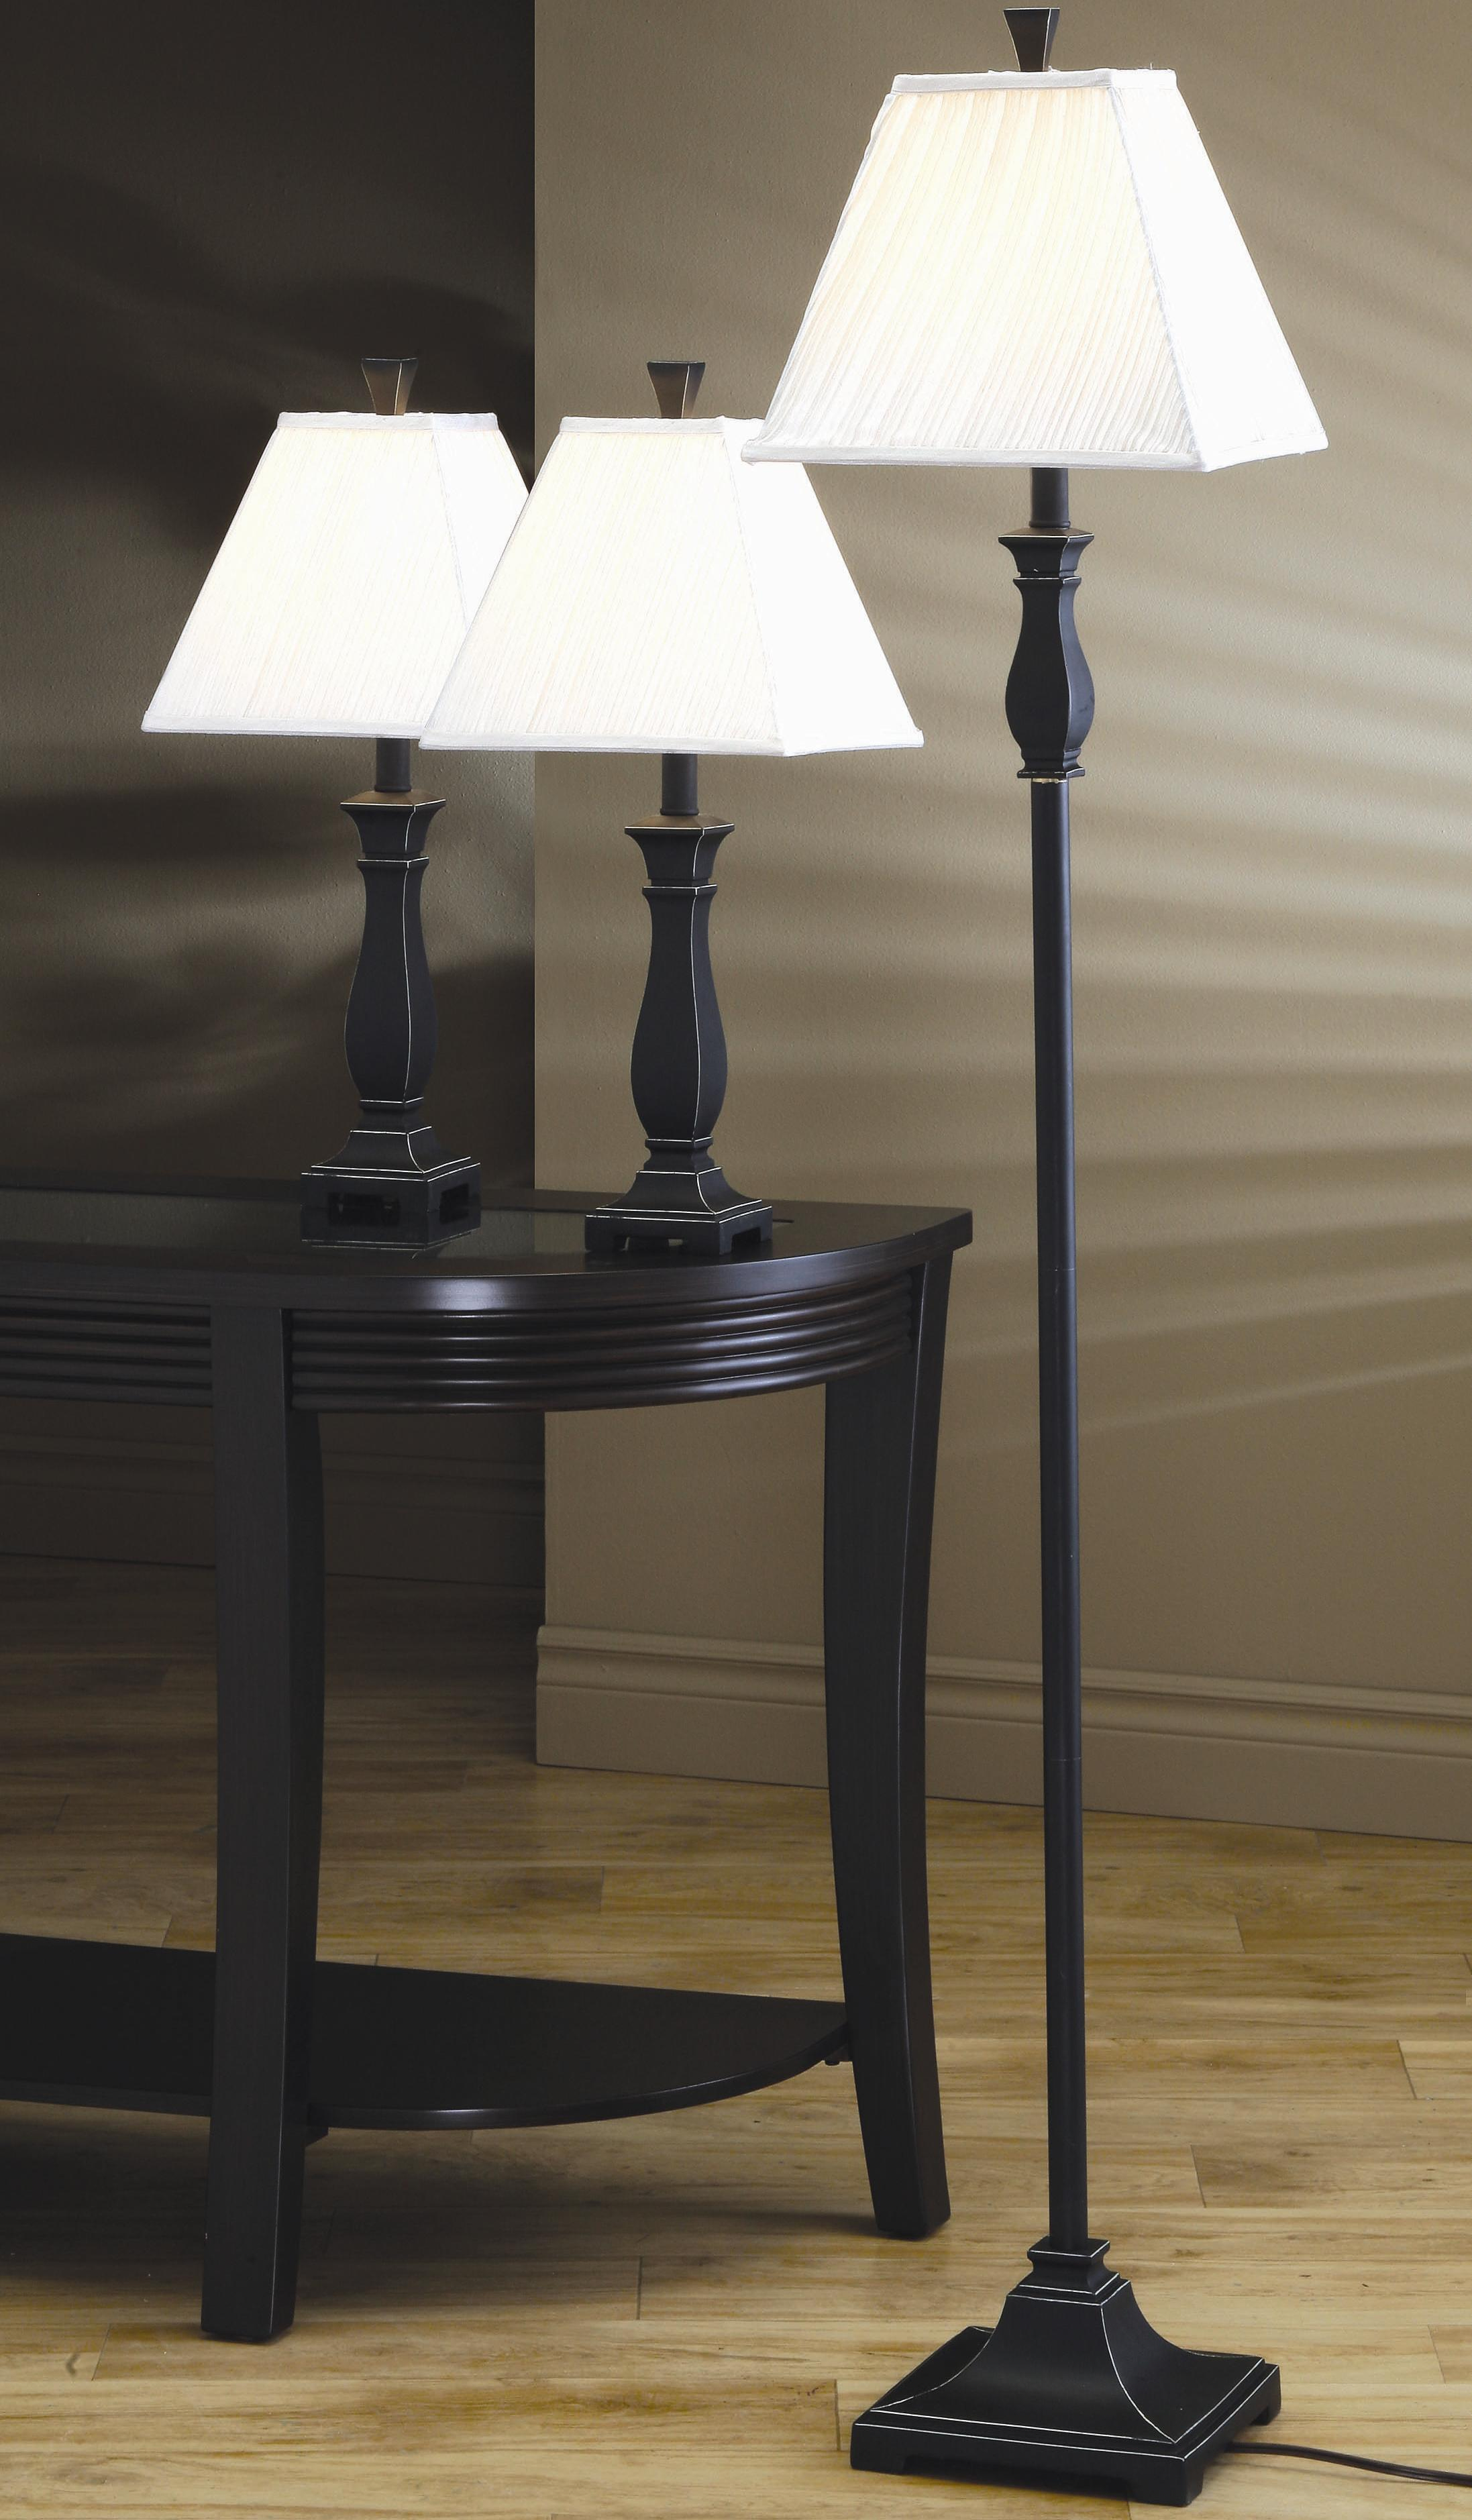 Discount Floor Lamps on Discount Floor Lamp Jpg